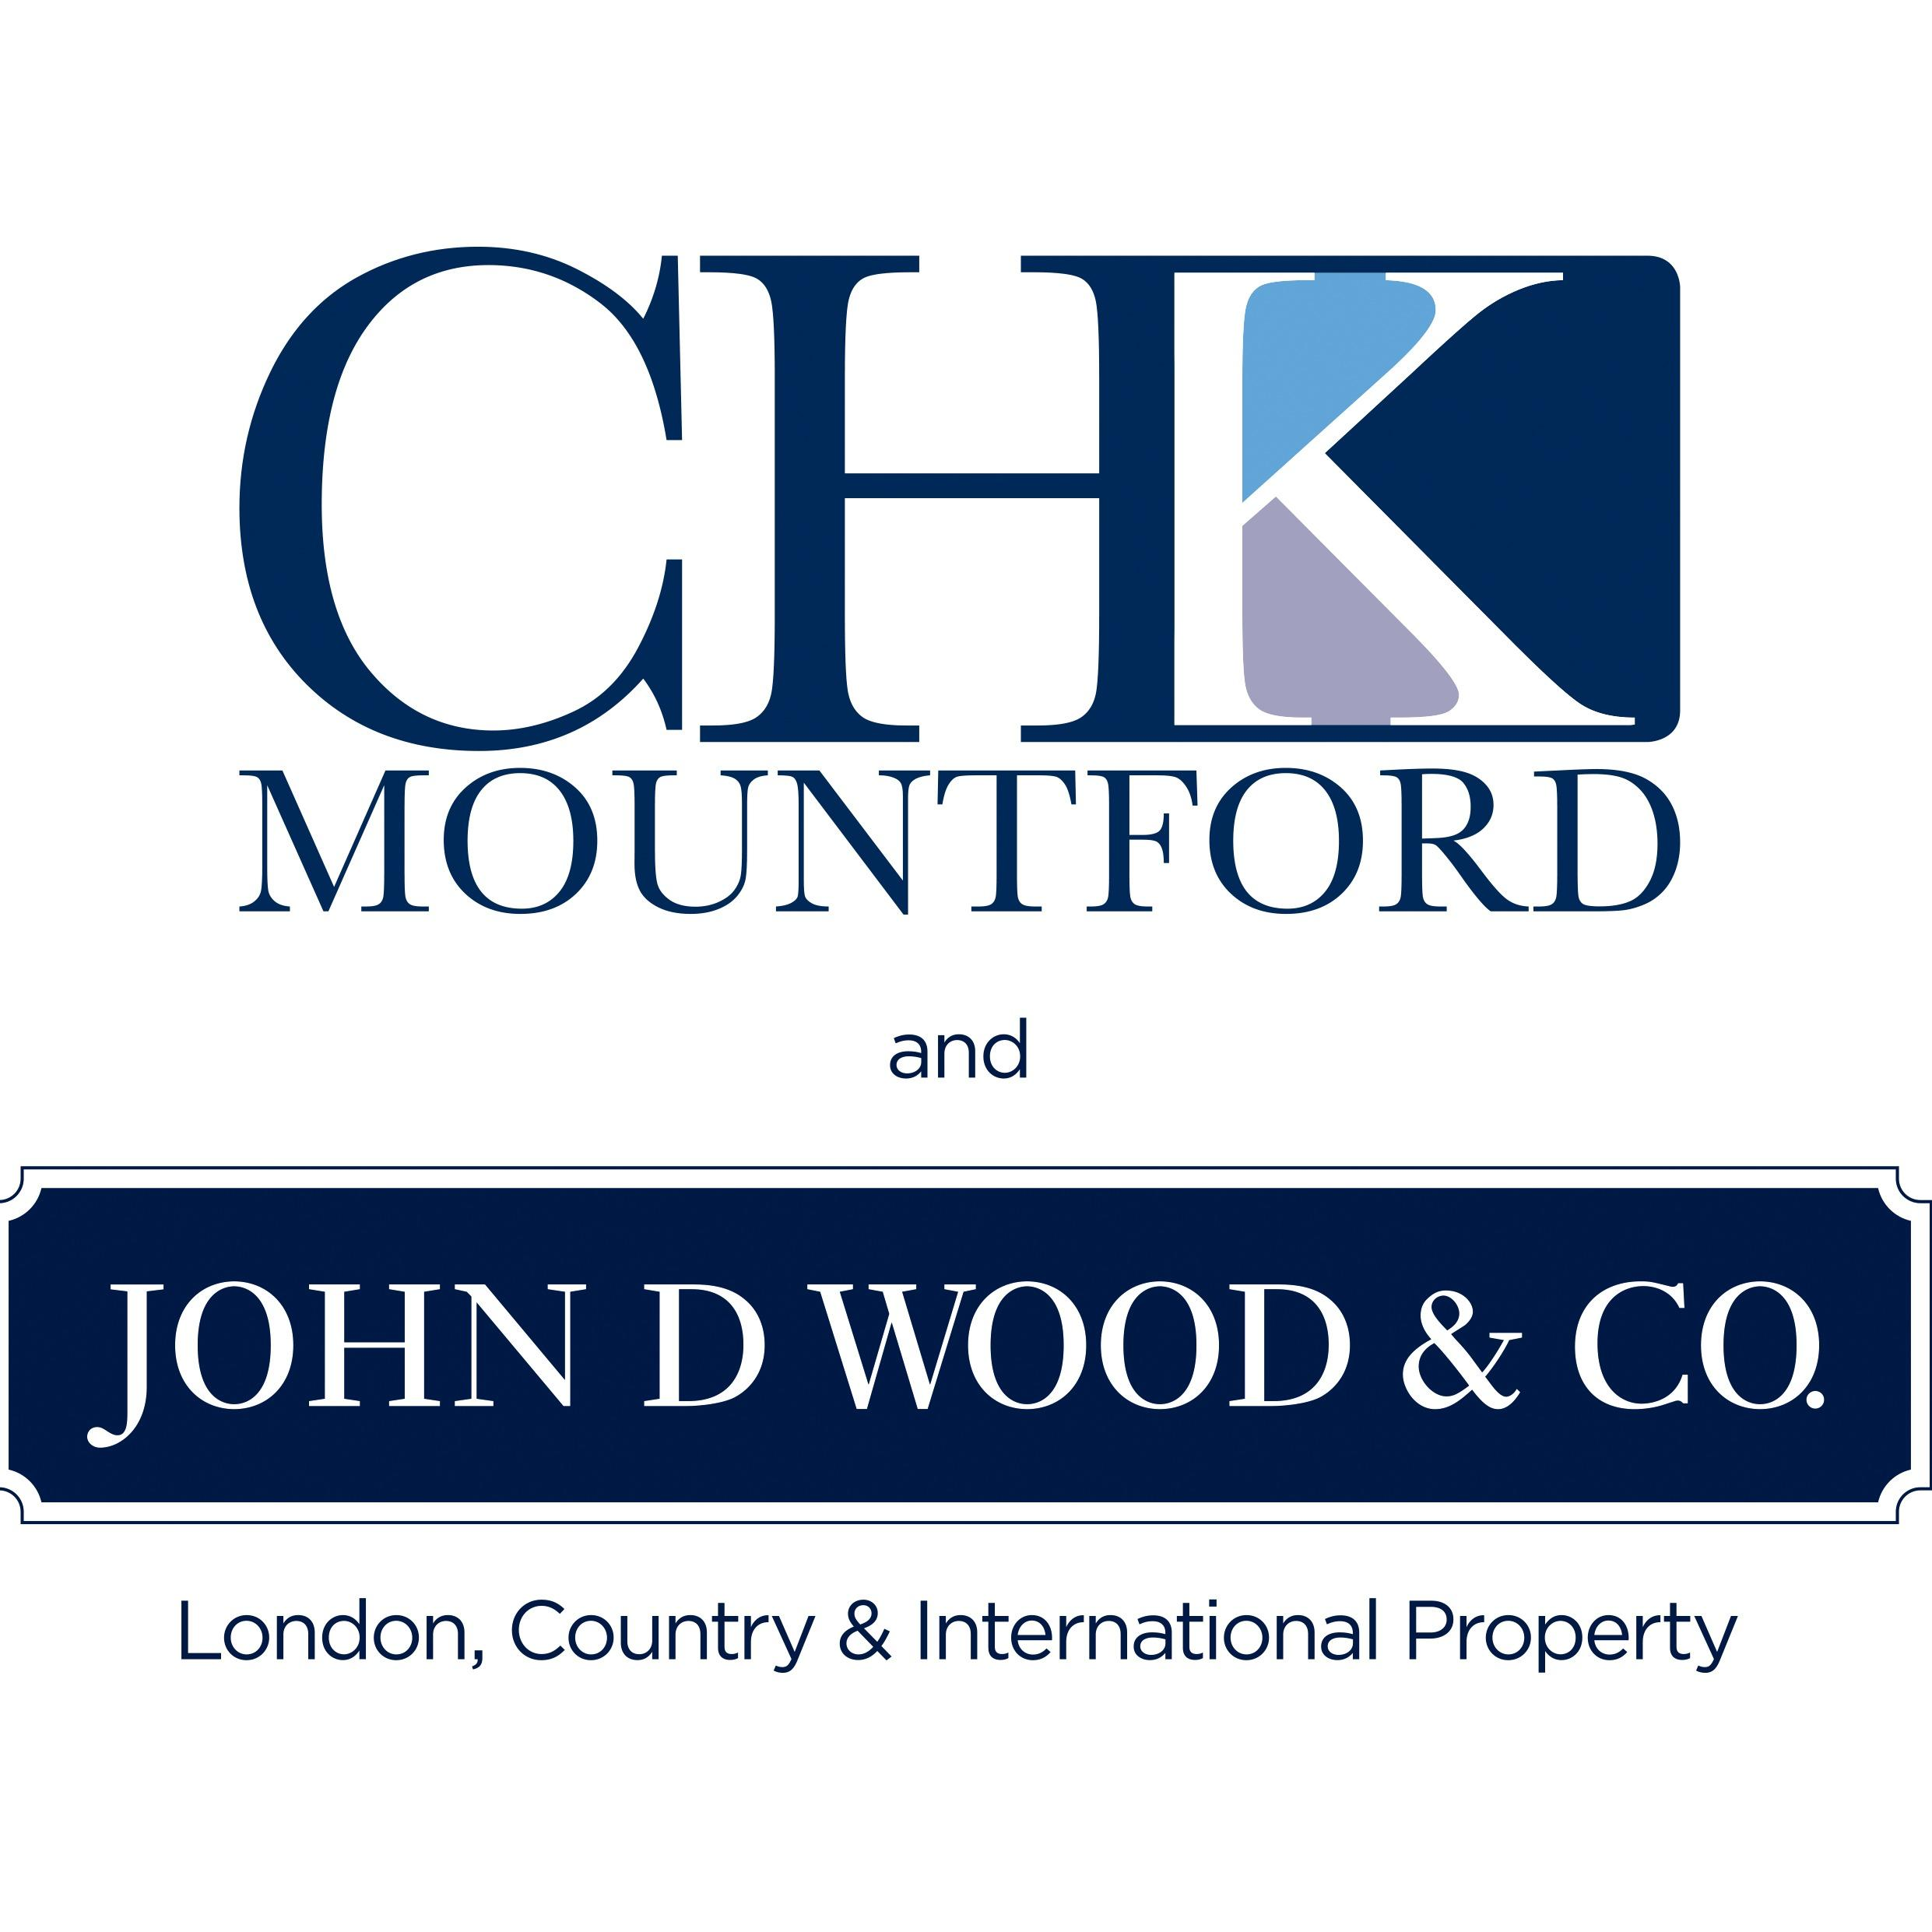 John D Wood & Co Estate Agents and CHK Mountford Lettings - Esher, Surrey KT10 9RQ - 01372 390049   ShowMeLocal.com